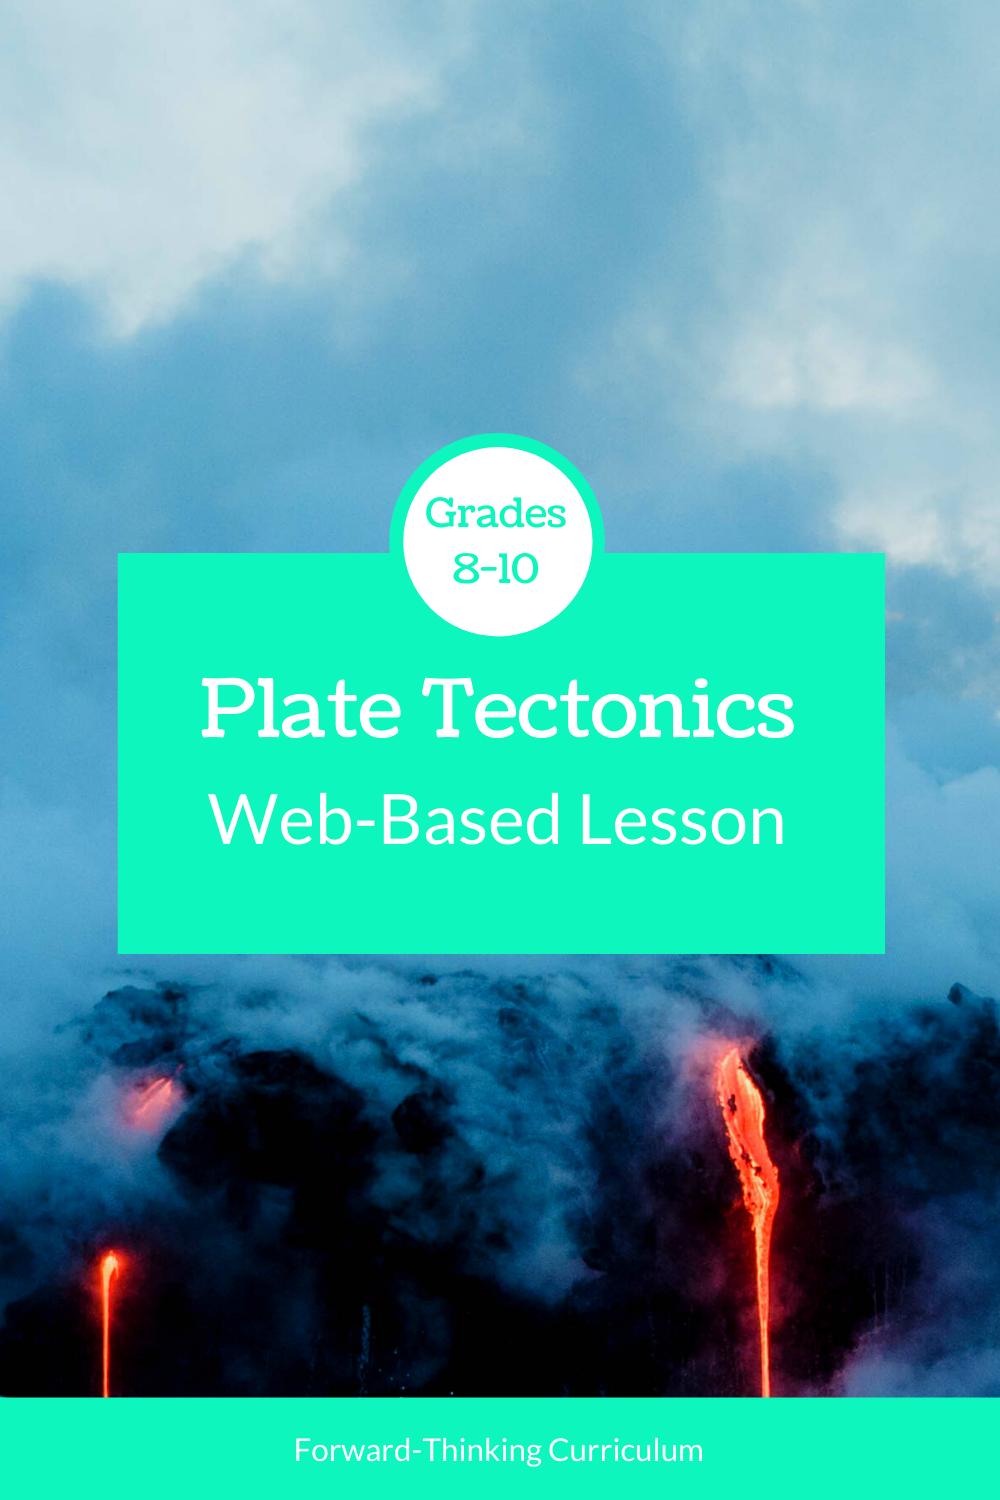 Pin By Forward Thinking Curriculum G On Earth Science Lessons Earth Science Lessons Plate Tectonics Geology Lessons [ 1500 x 1000 Pixel ]